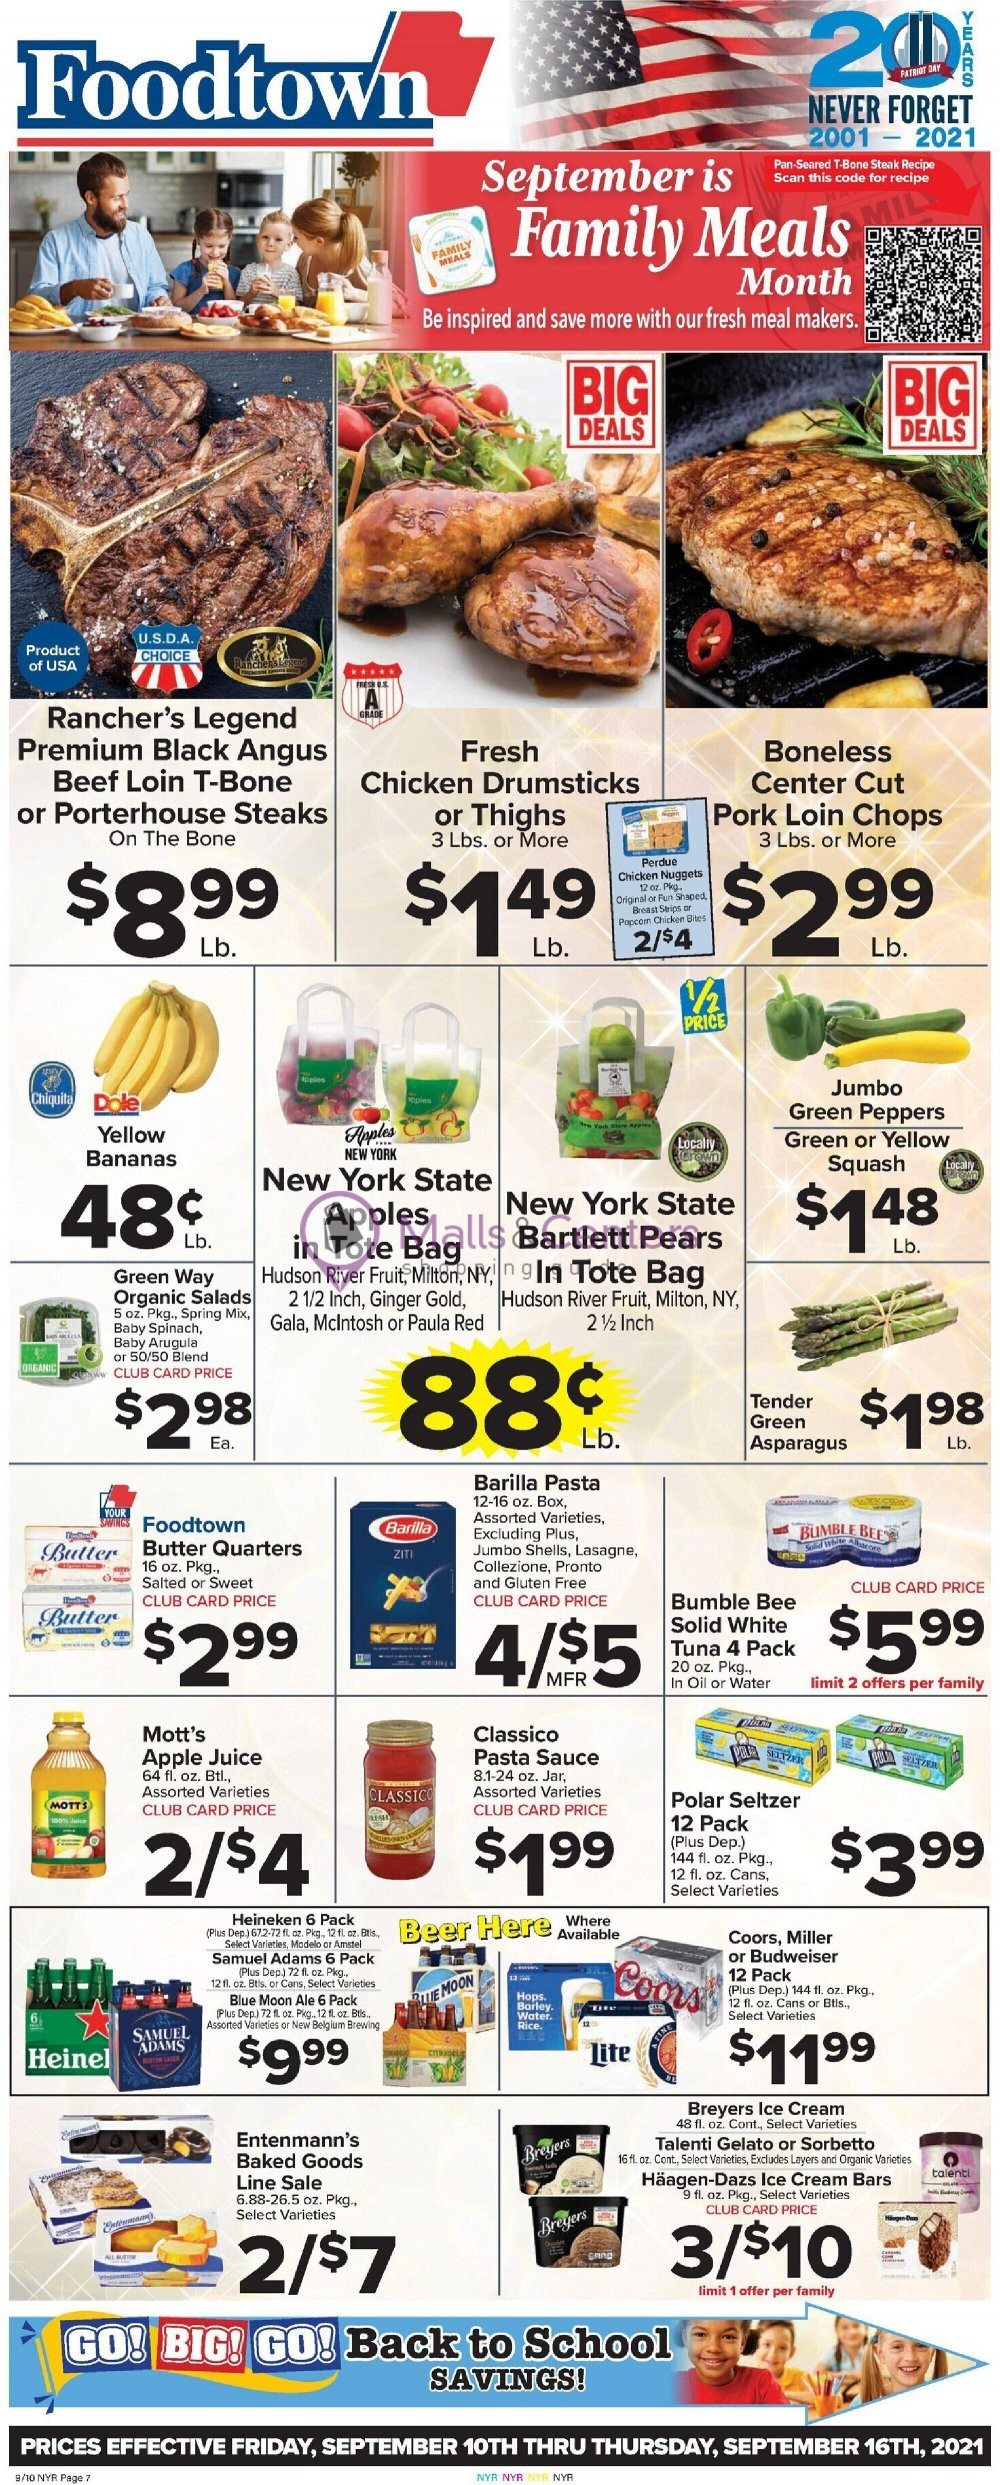 weekly ads Foodtown Grocery - page 1 - mallscenters.com